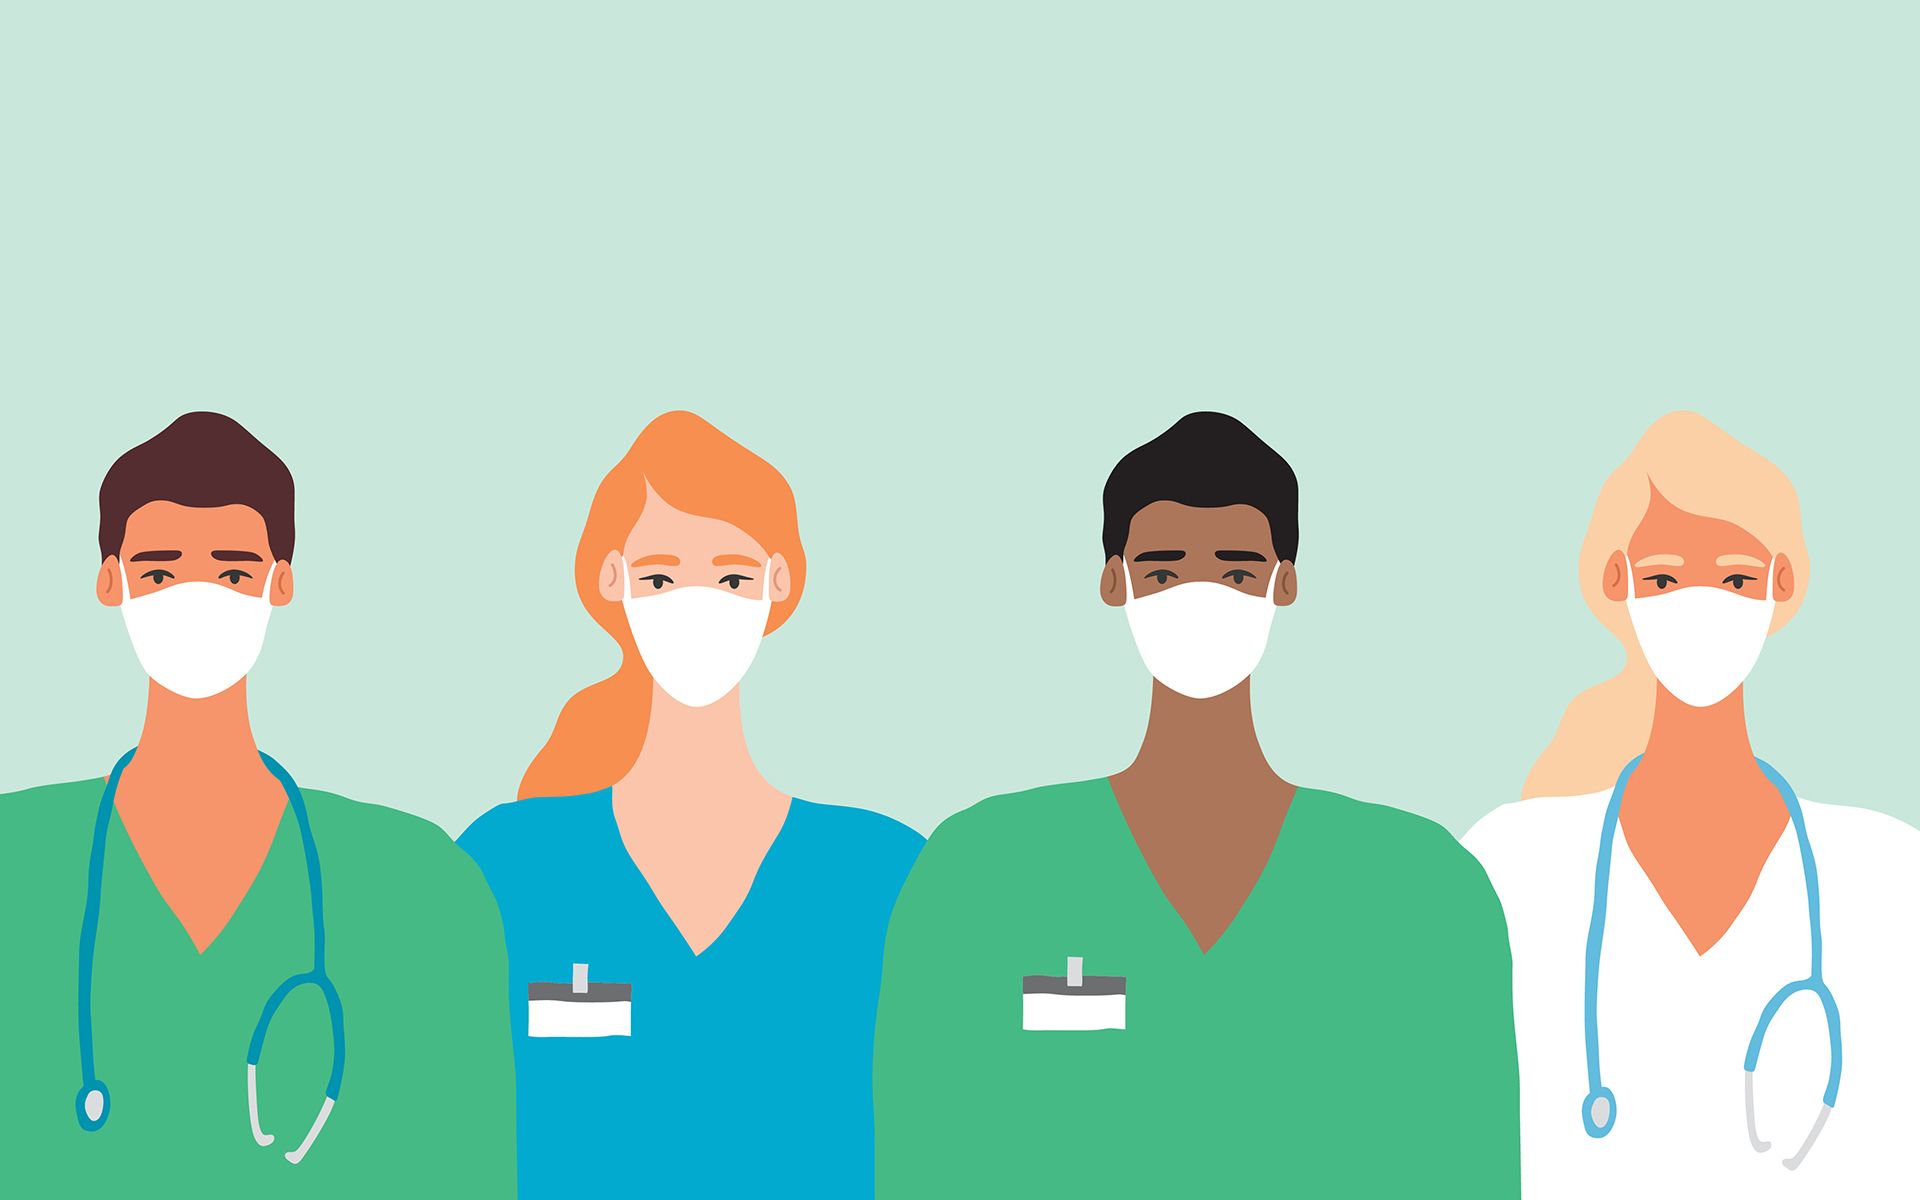 8 Mindful Ways Healthcare Workers Can Reduce Stress - Doctor in Mask Coronavirus Frontline Illustration